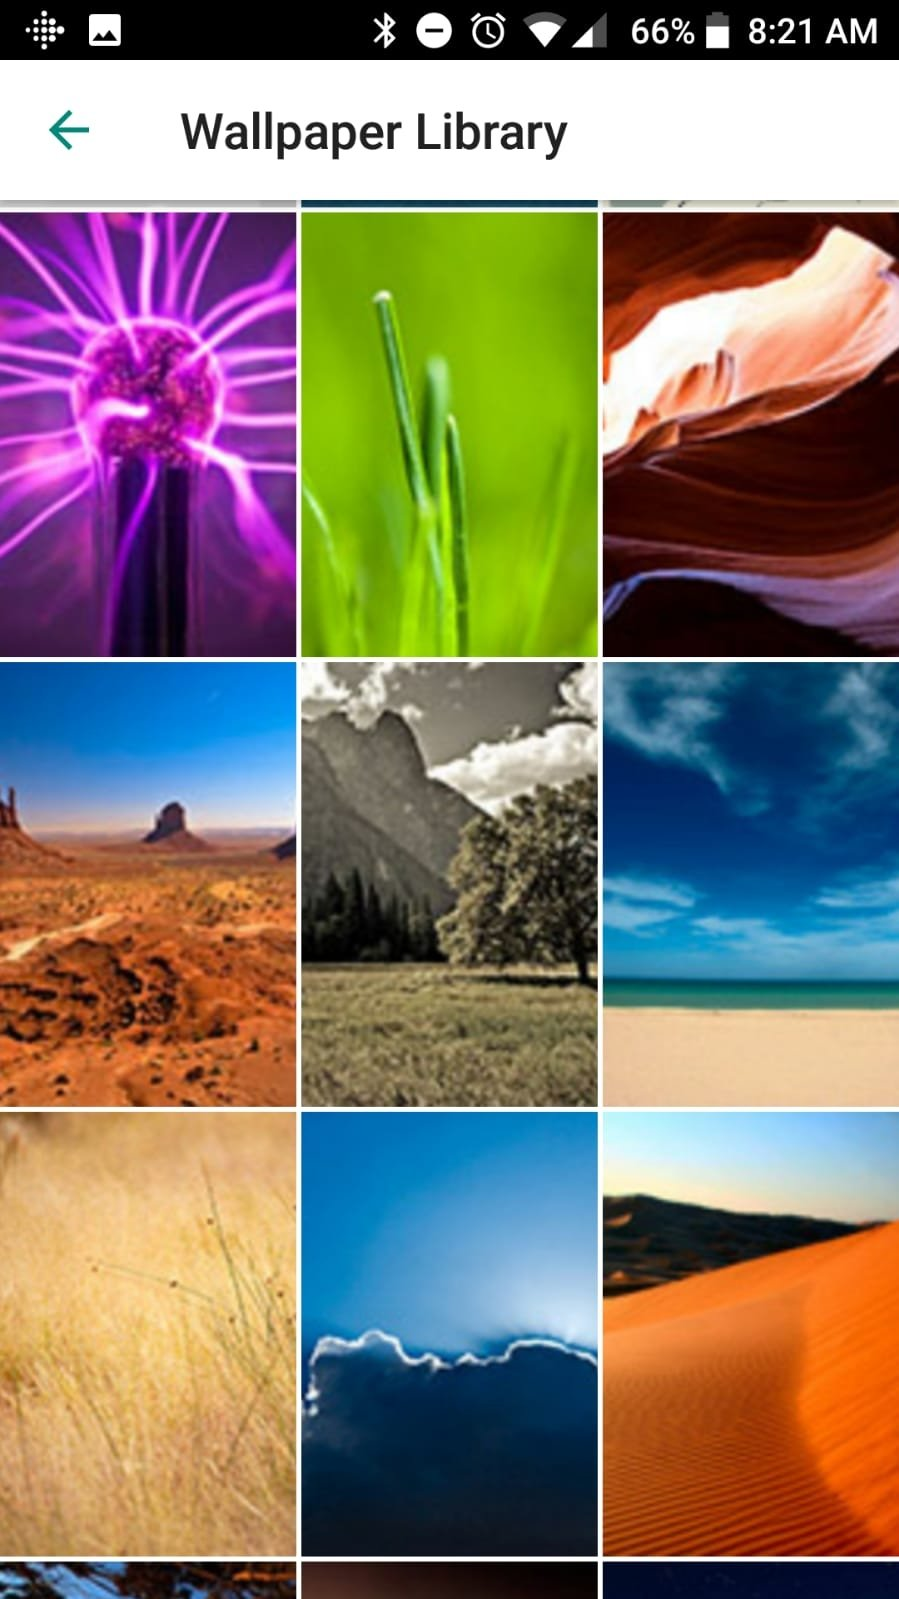 WhatsApp Wallpaper 2 - Download for Android APK Free